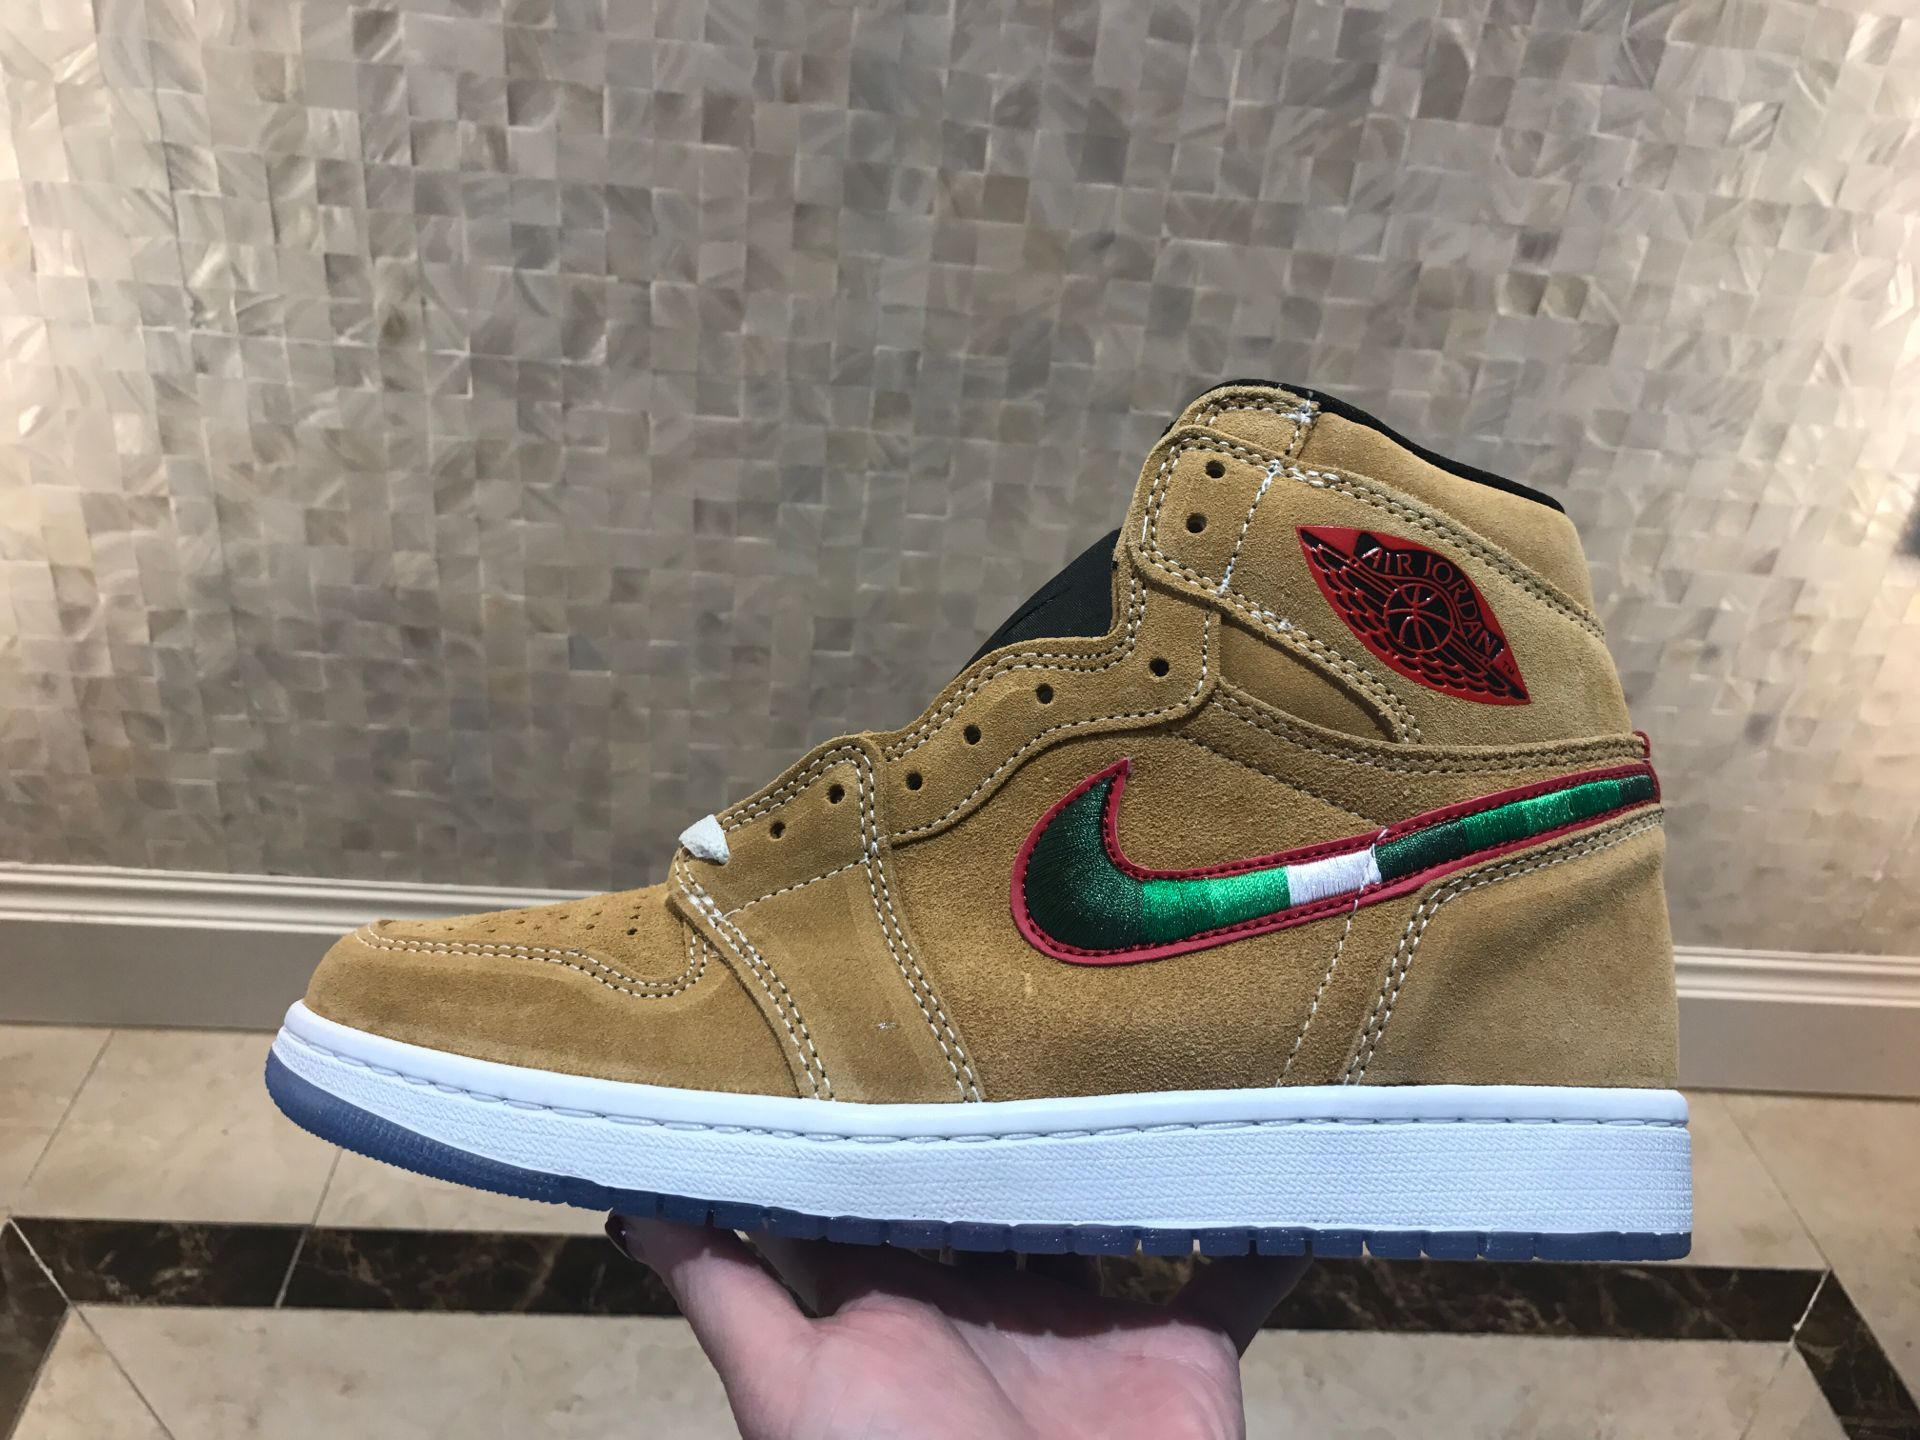 2019 Air Jordan 1 Wheat Yellow Green Red Shoes